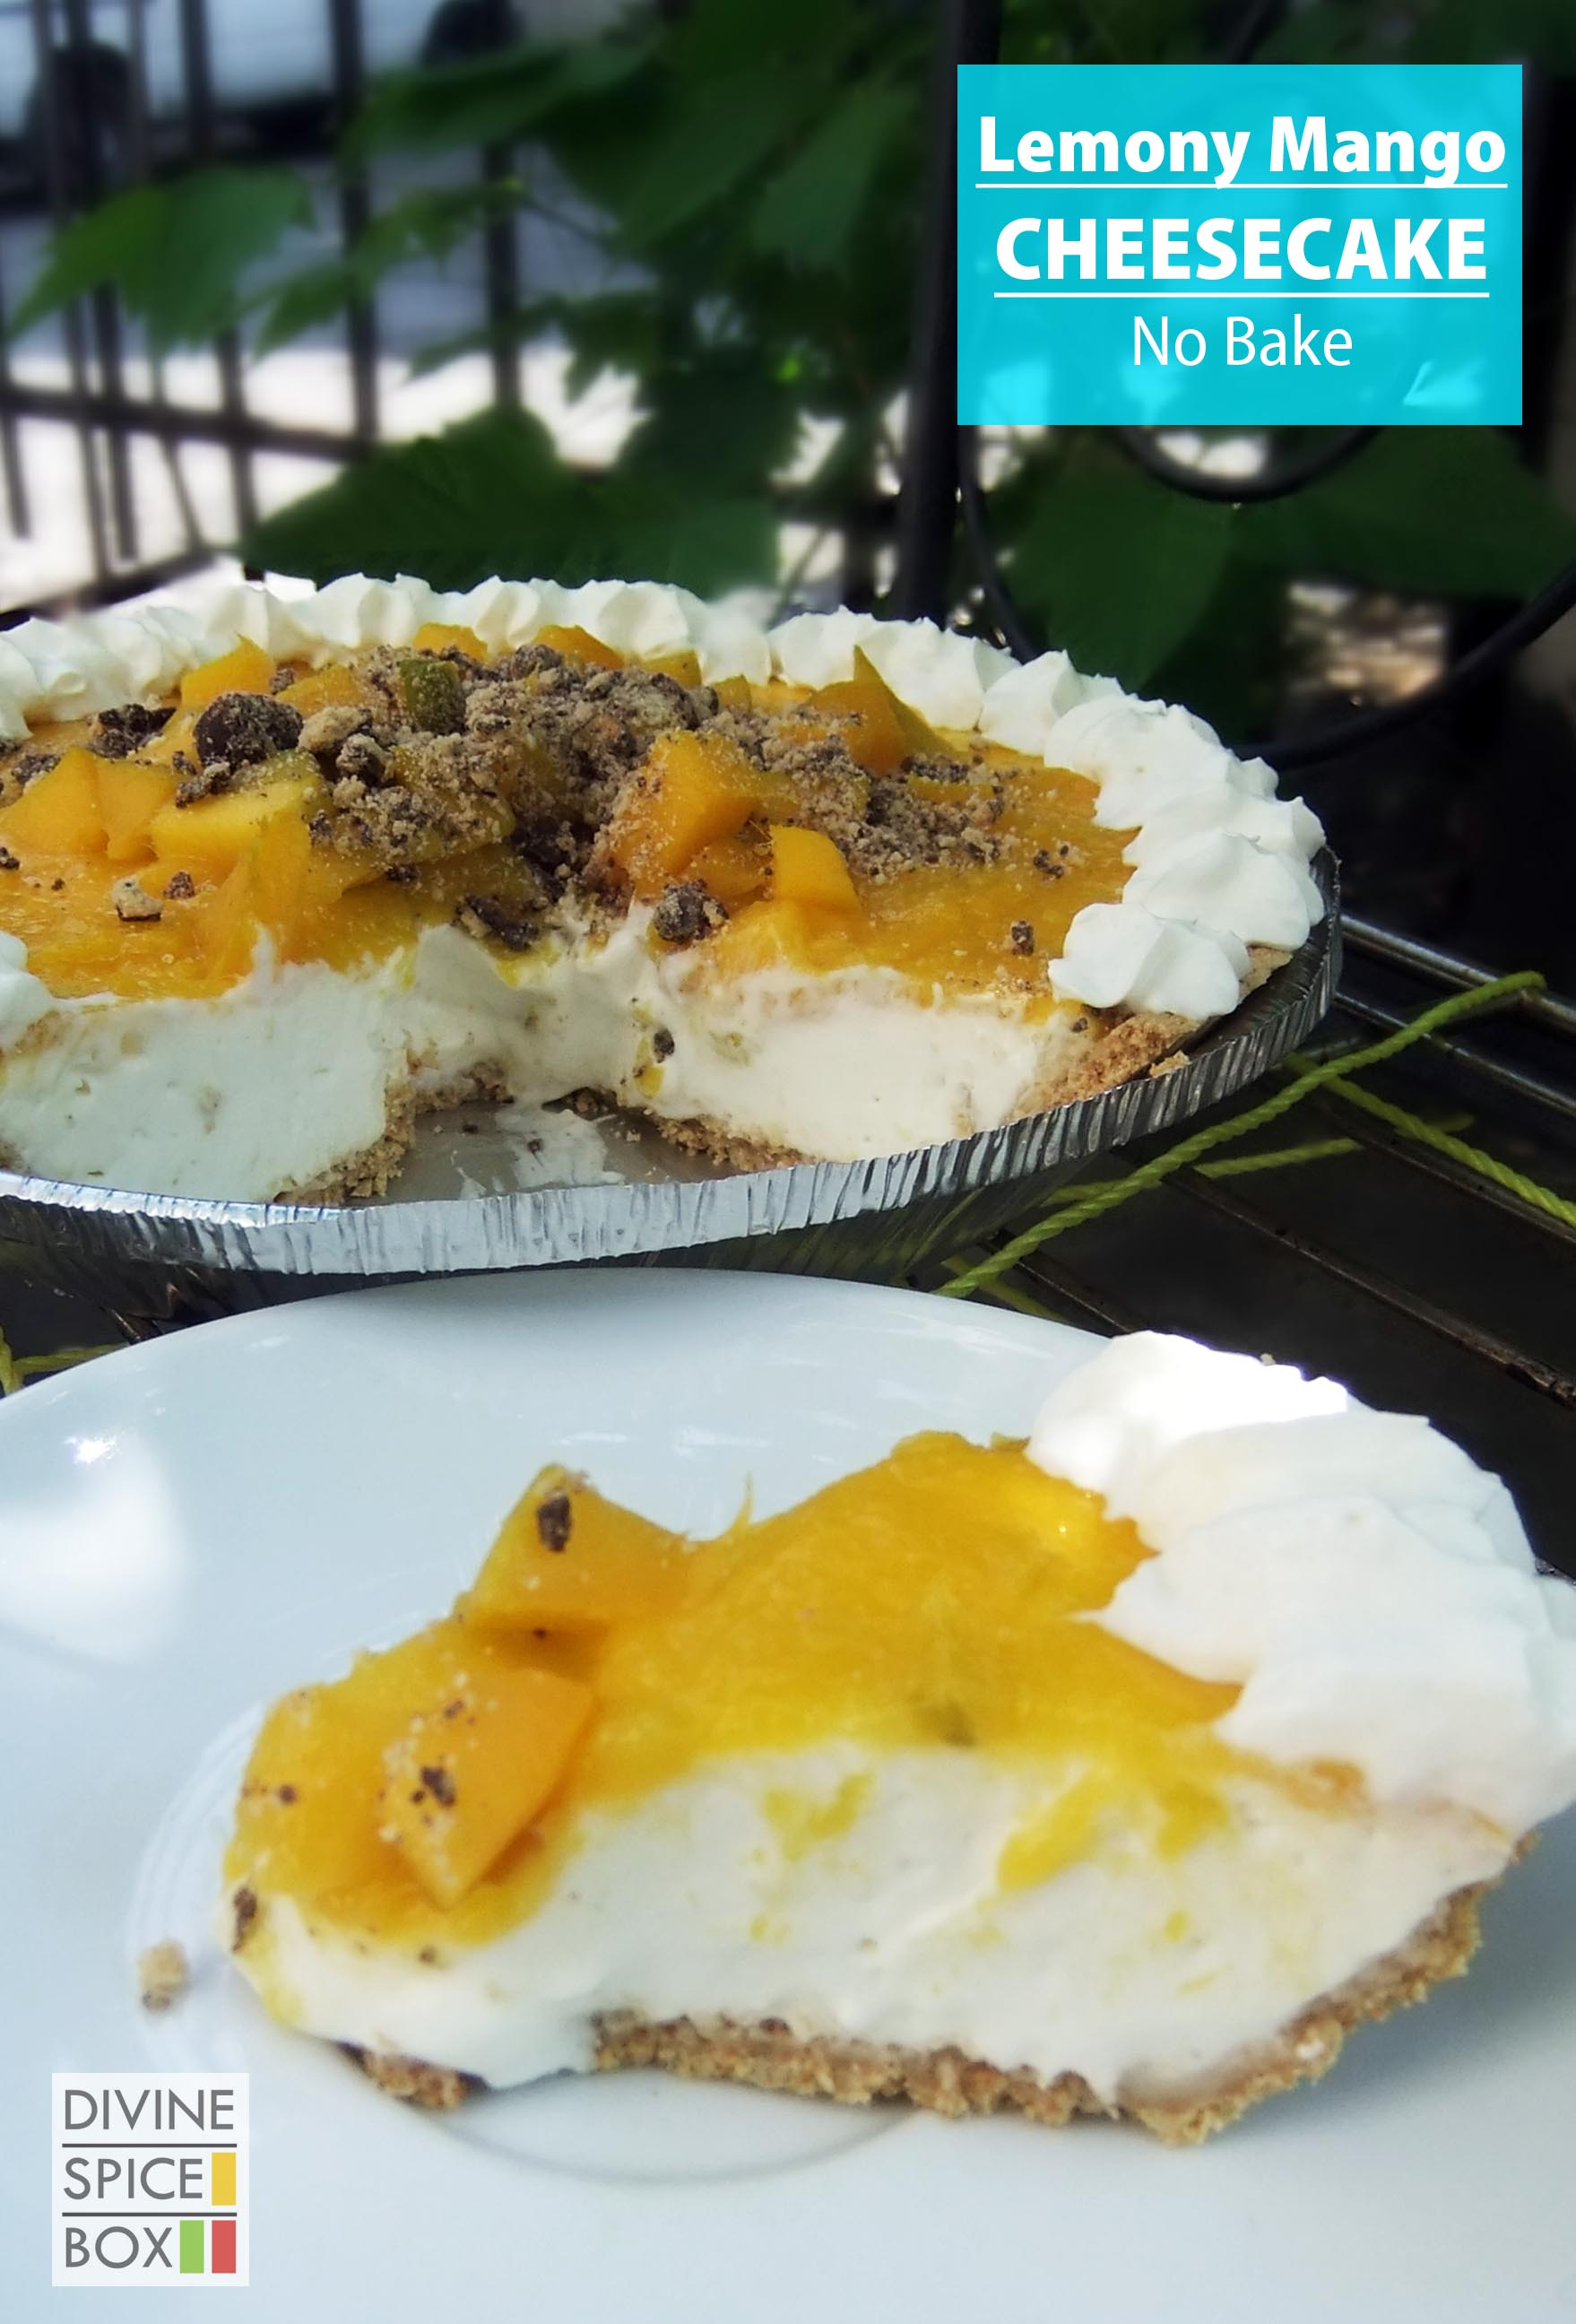 Lemon Mango Cheesecake - no Bake